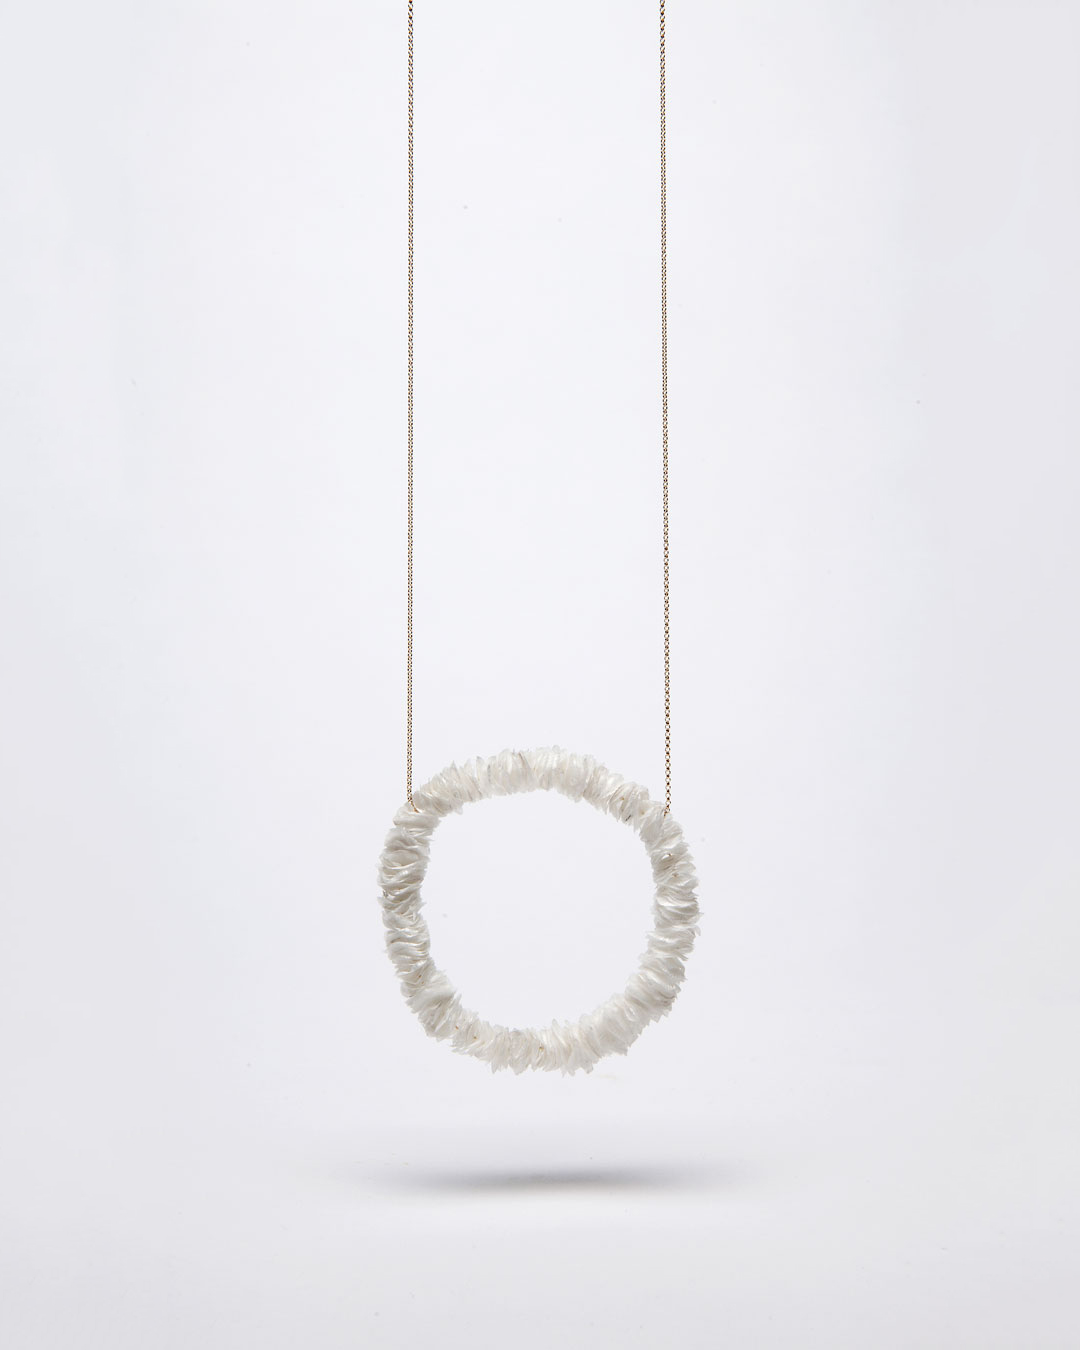 Annamaria Leiste, Meeresraunen 2 (Sea Whisper 2), 2014, necklace; gold, fish scales, 370 x 170 x 10 mm, €885